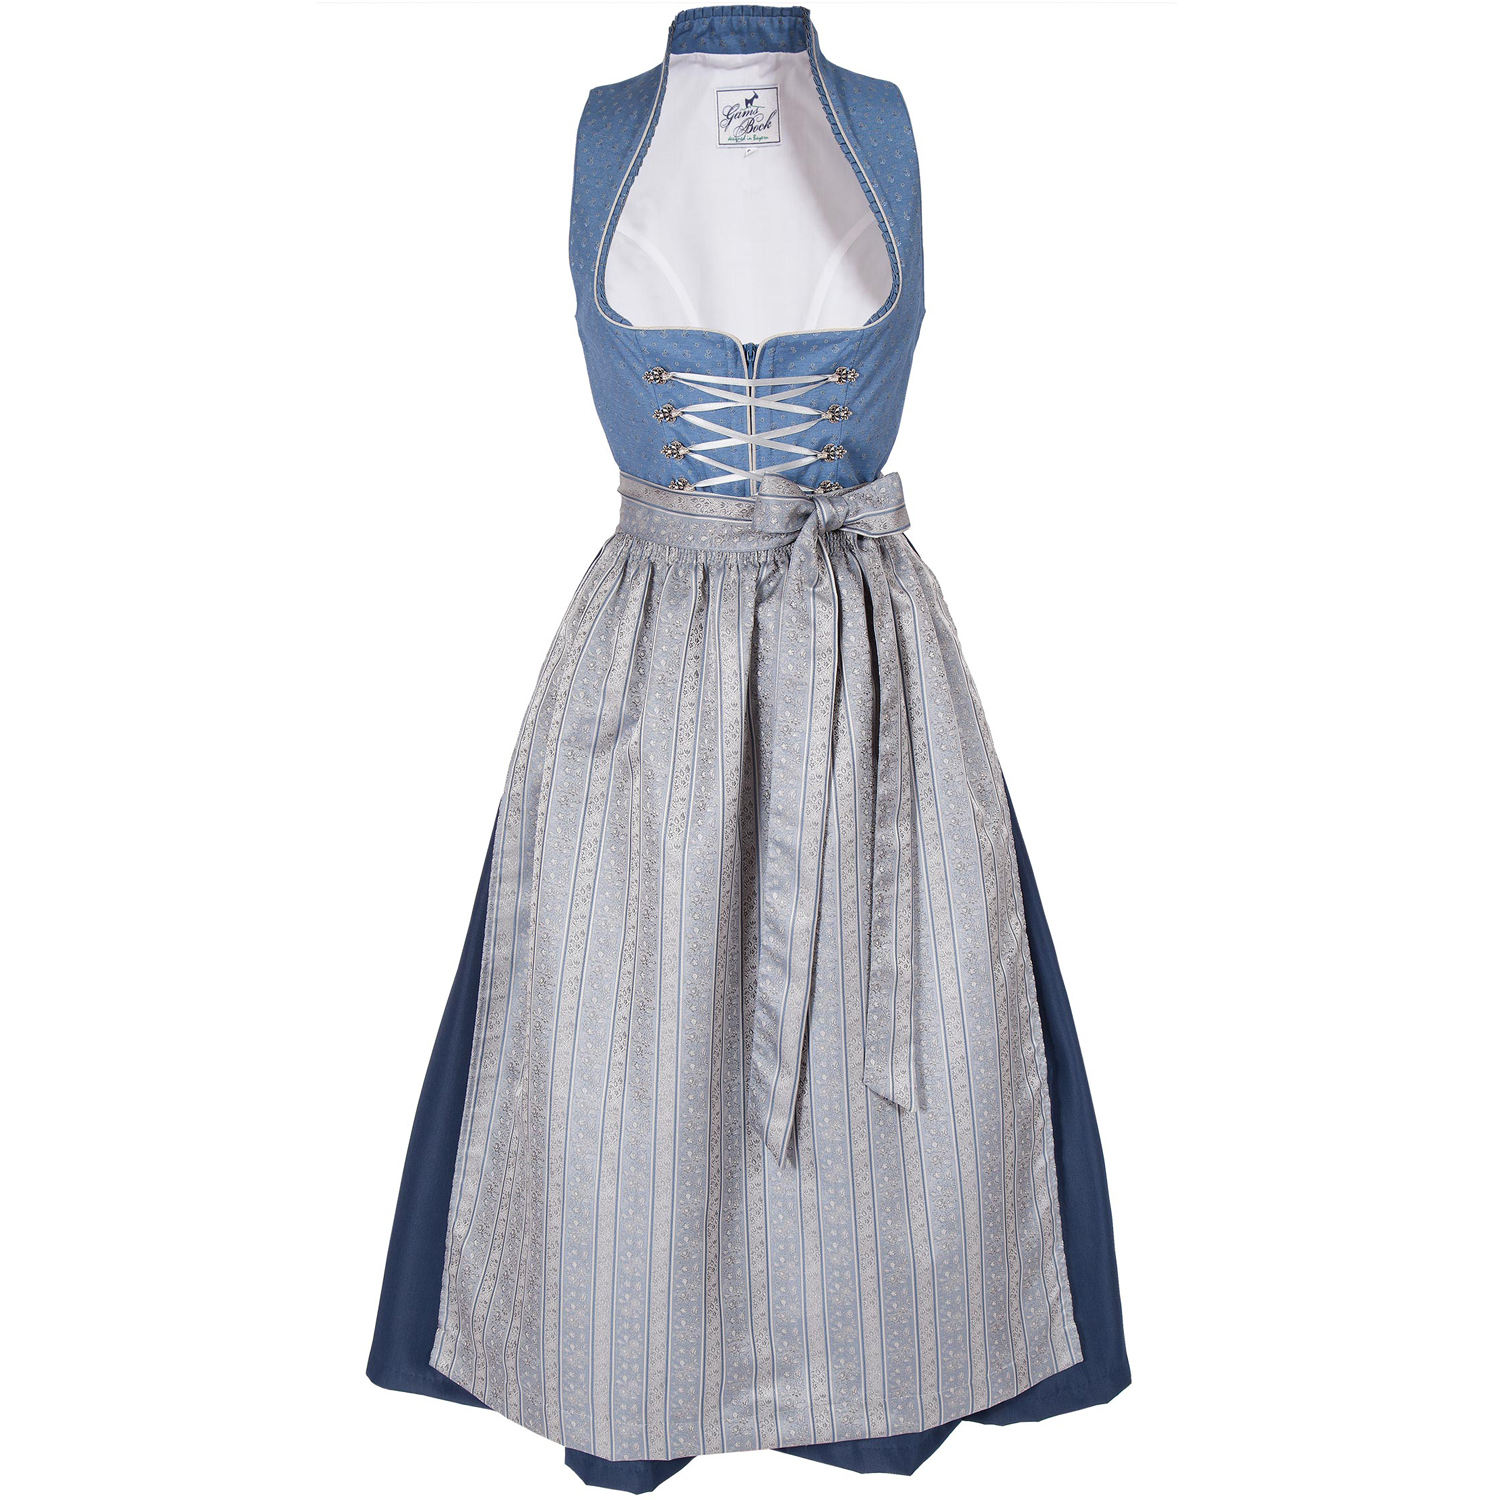 Dirndl long Tessa in blue and silver